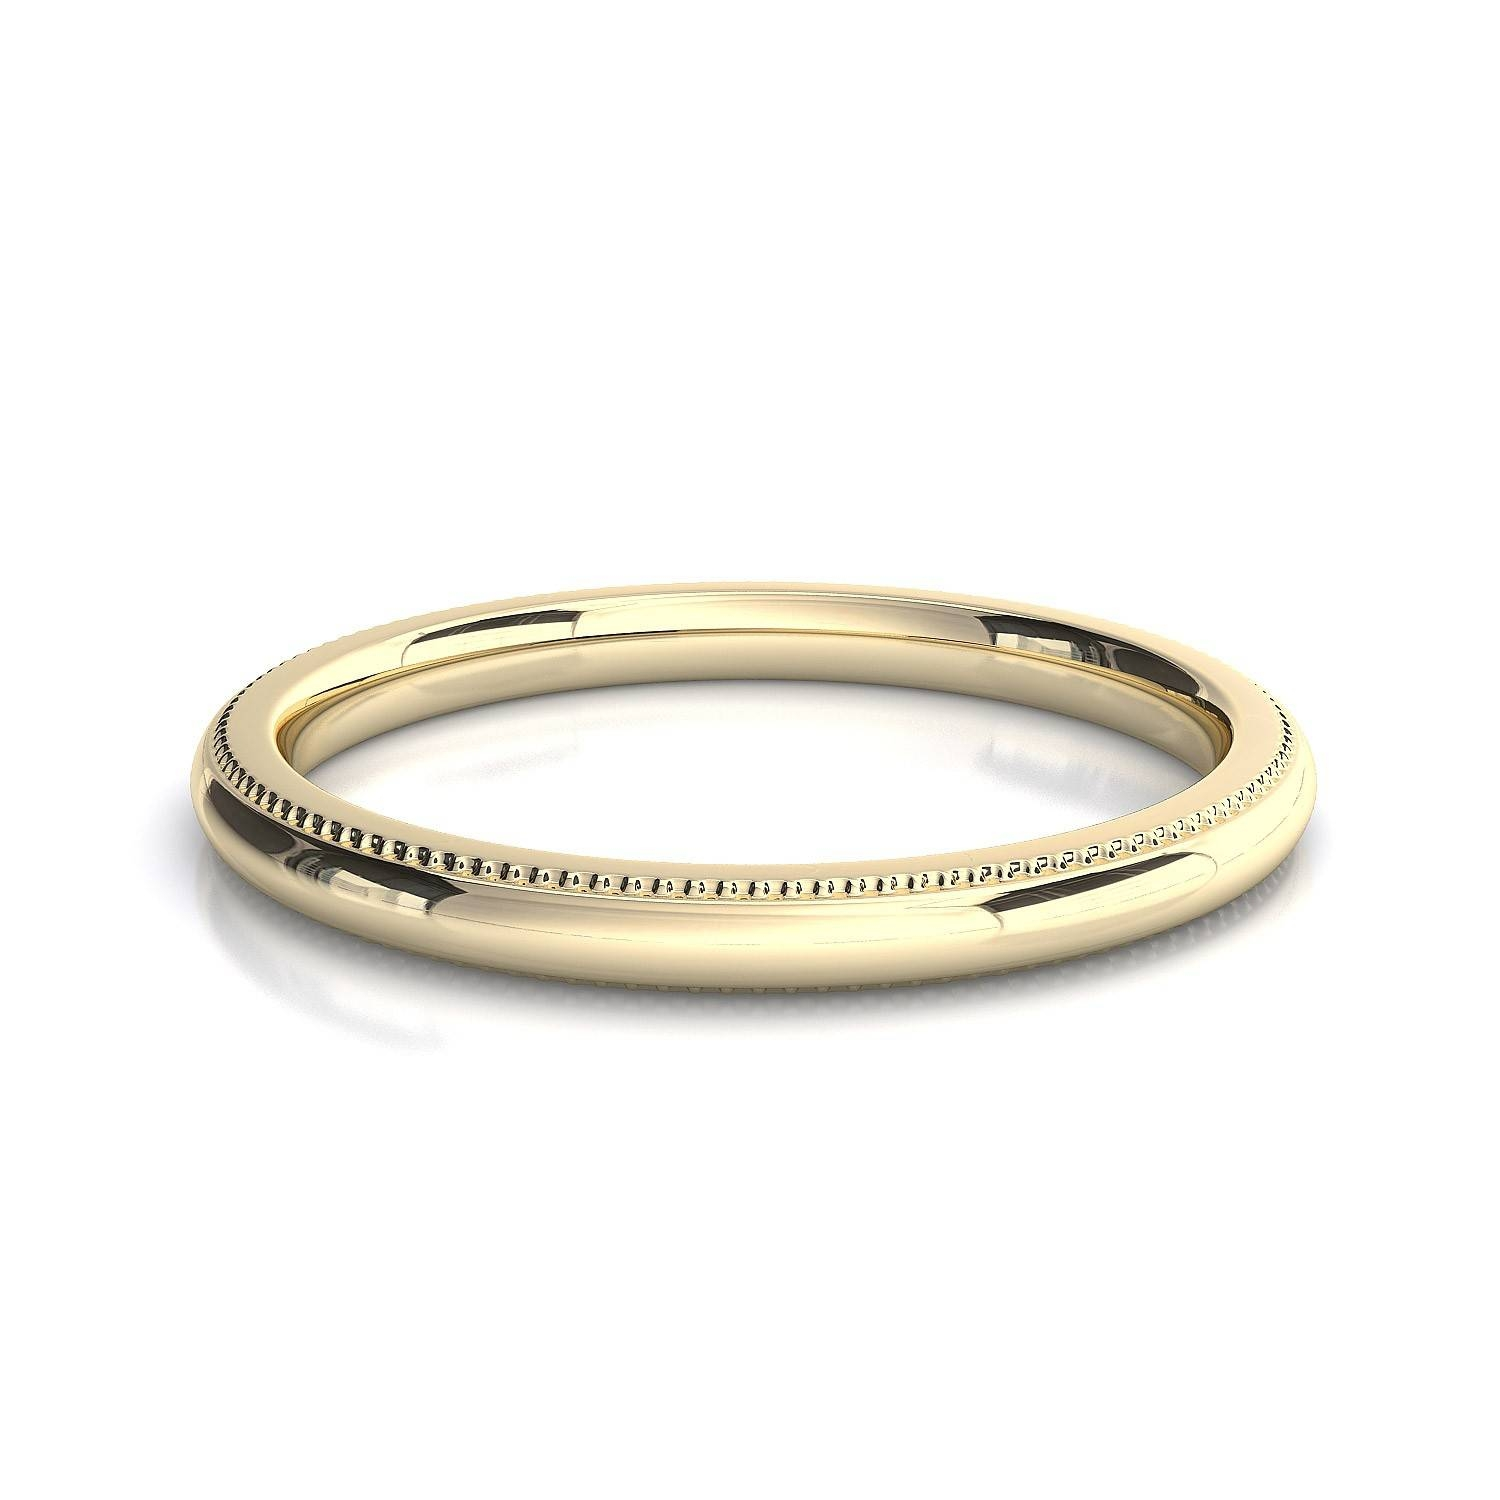 Millgrain Edge Wedding Band Toronto Custom Jewellery Intended For 2017 Plain Wedding Bands For Women (View 6 of 15)